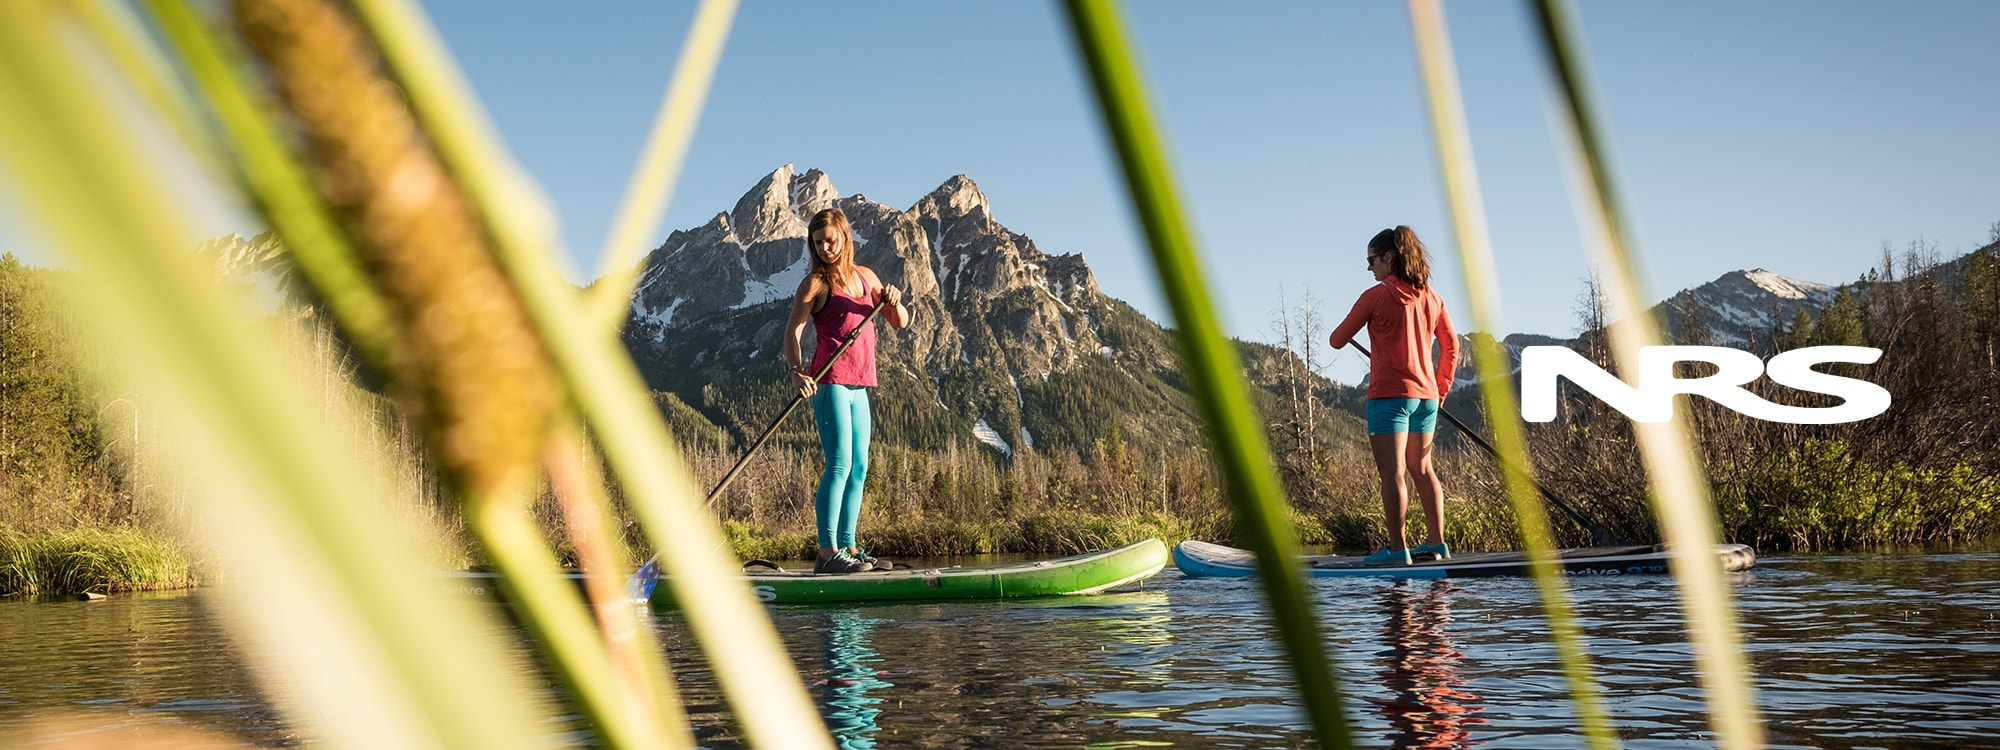 NRS Inflatable SUP Sale | NRS SUP Best Package Deals